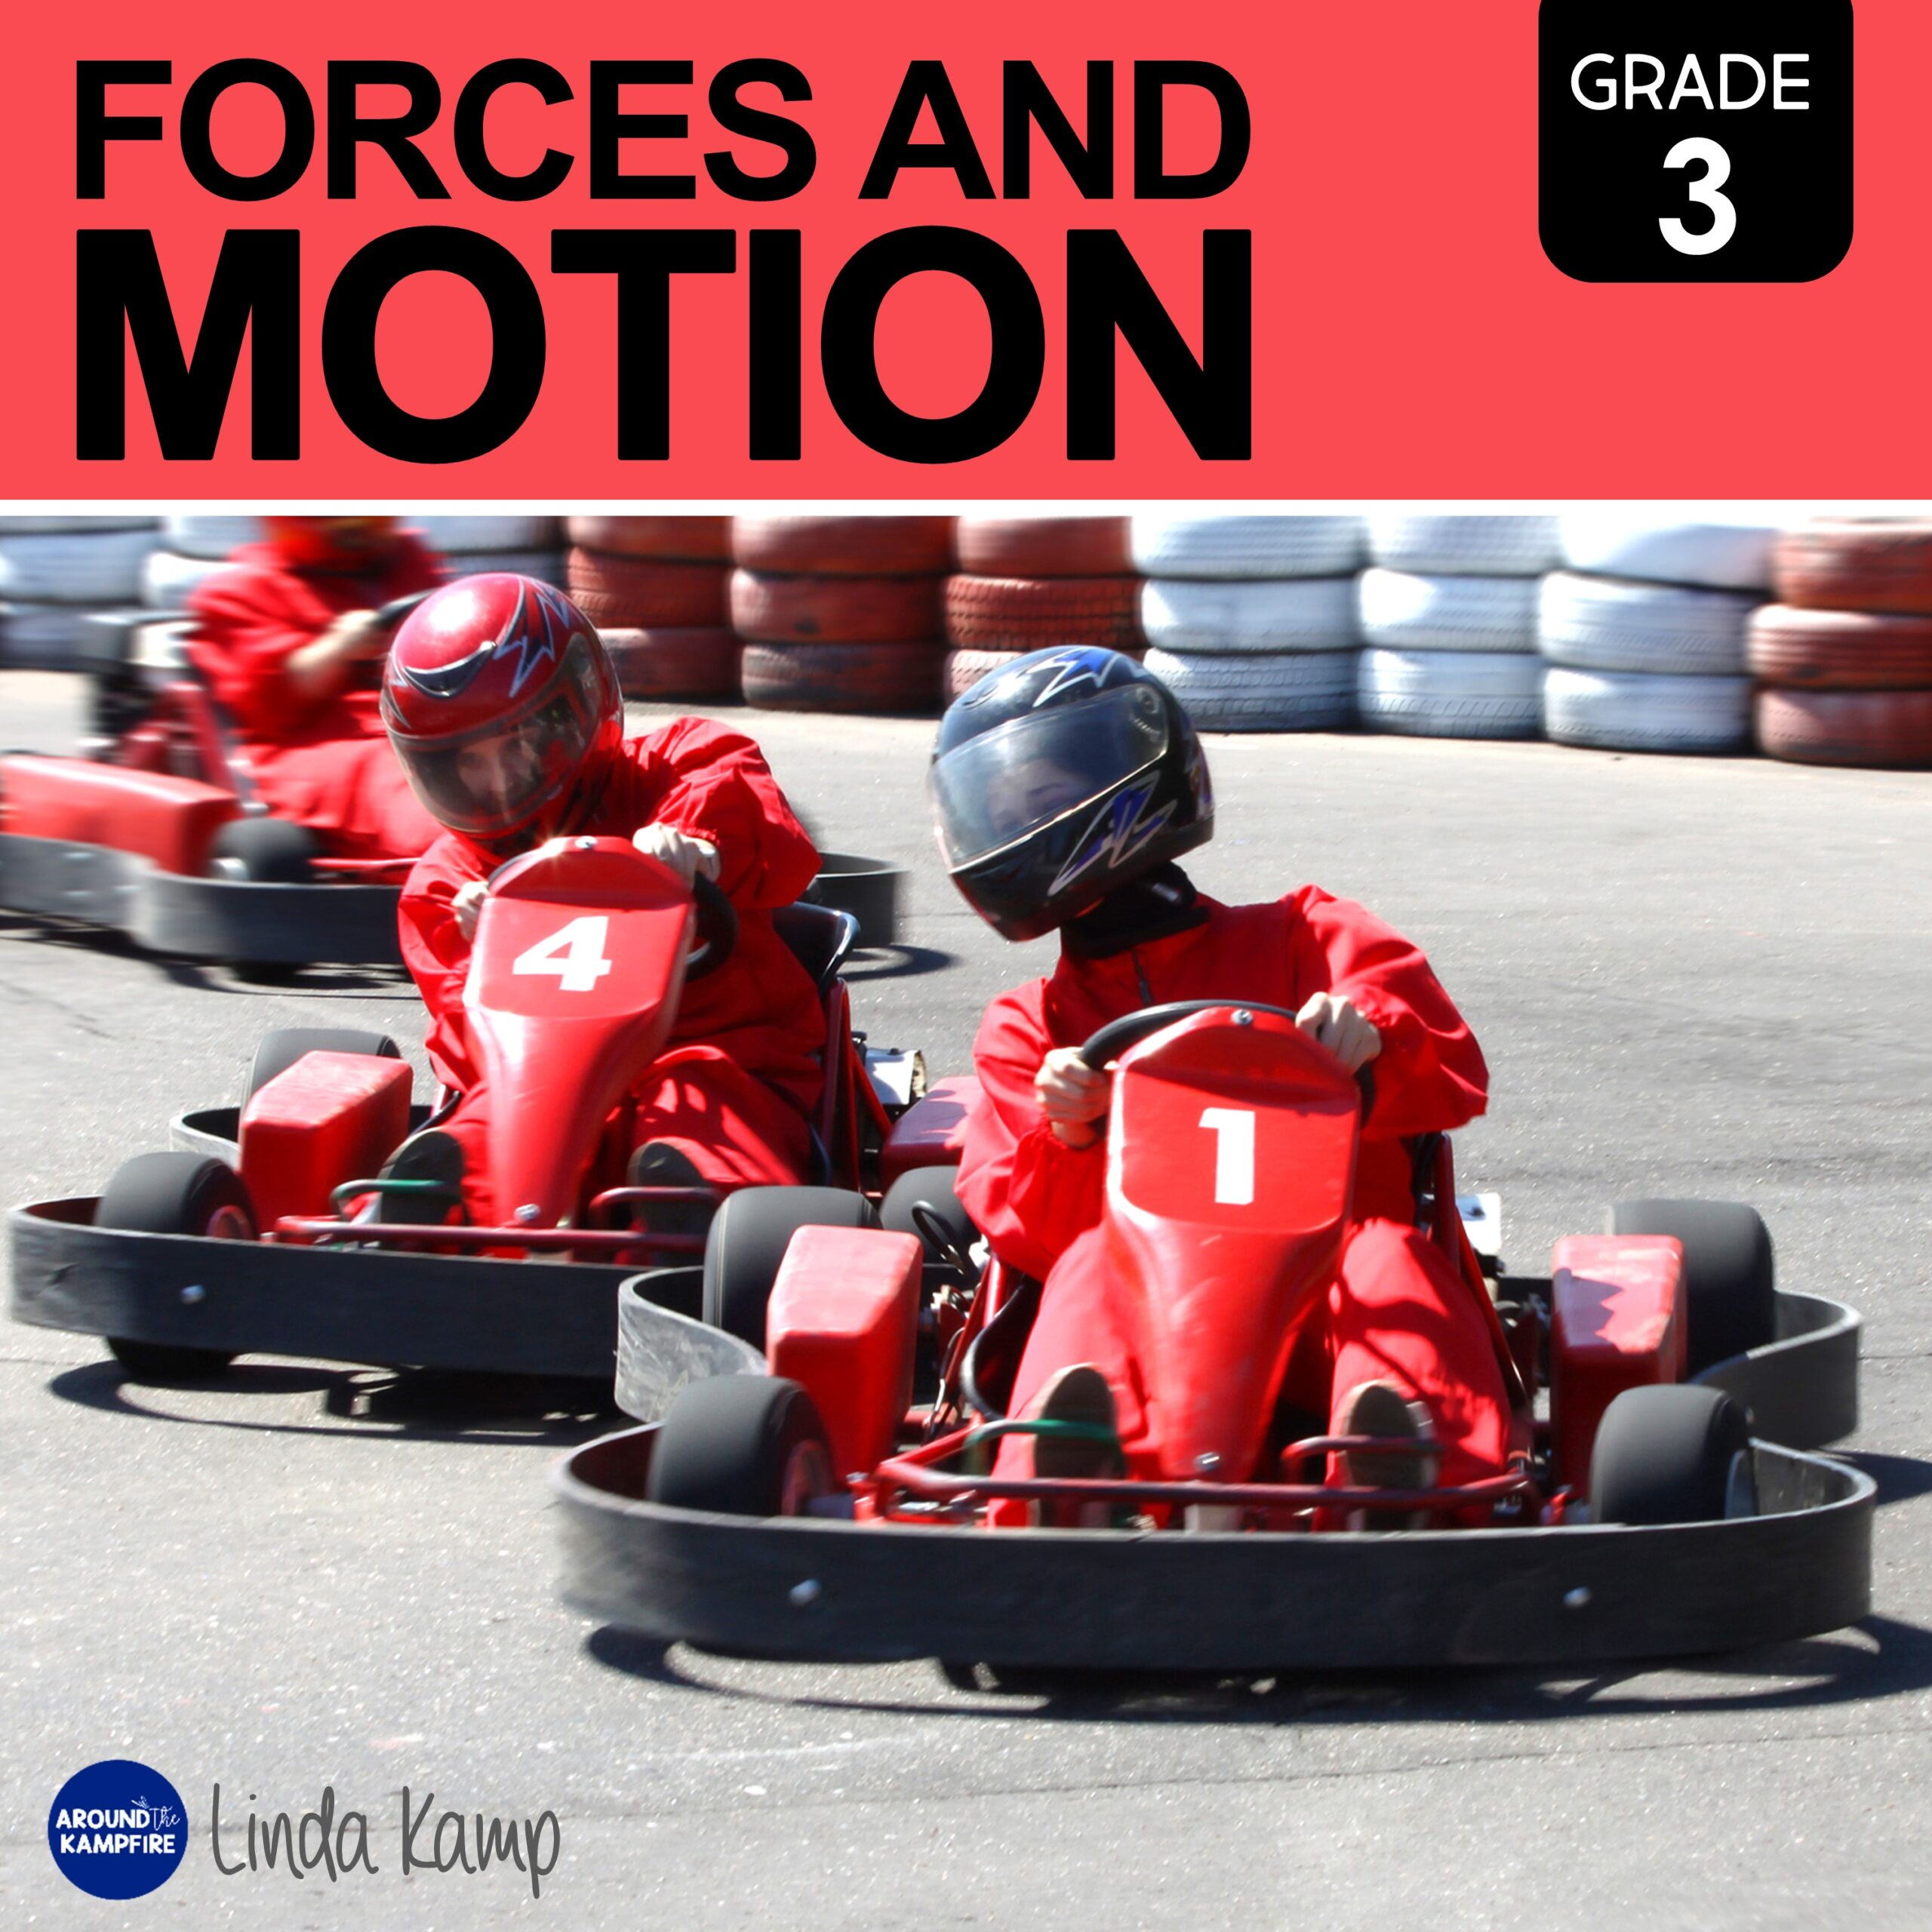 Forces and motion third grade science unit